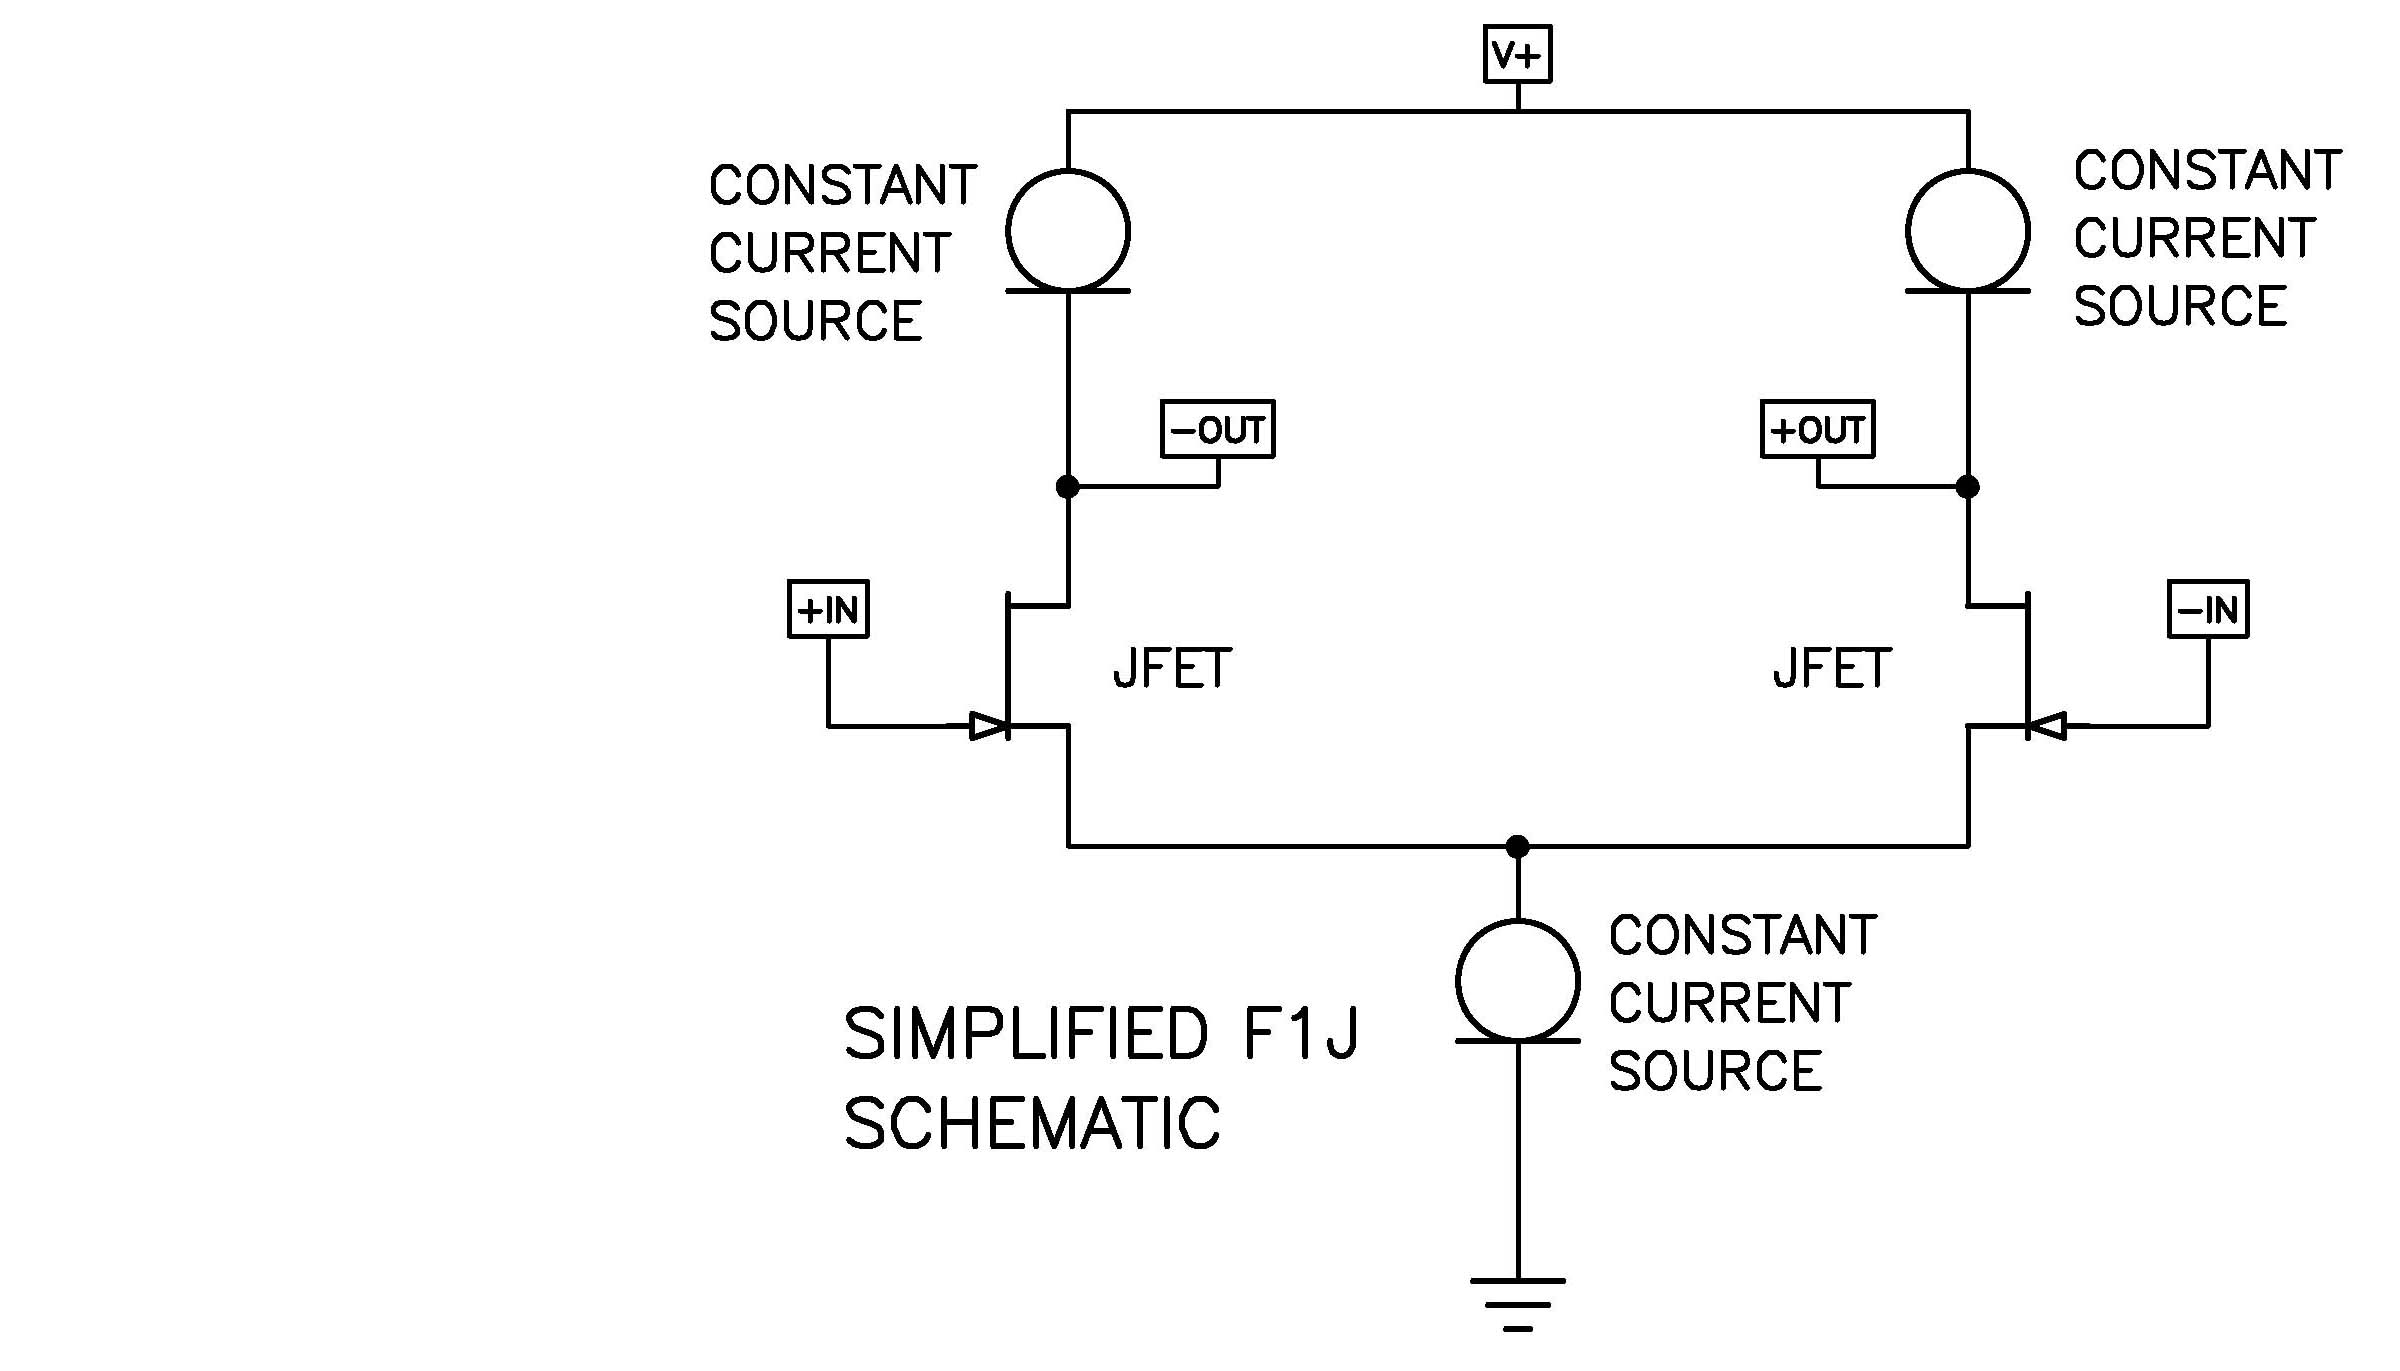 First Watt Constant Current Source Circuit In Addition There Have Been Changes To Several Resistor Values And Removal Of The Input Zener Protection Diodes As With F1 Simplified